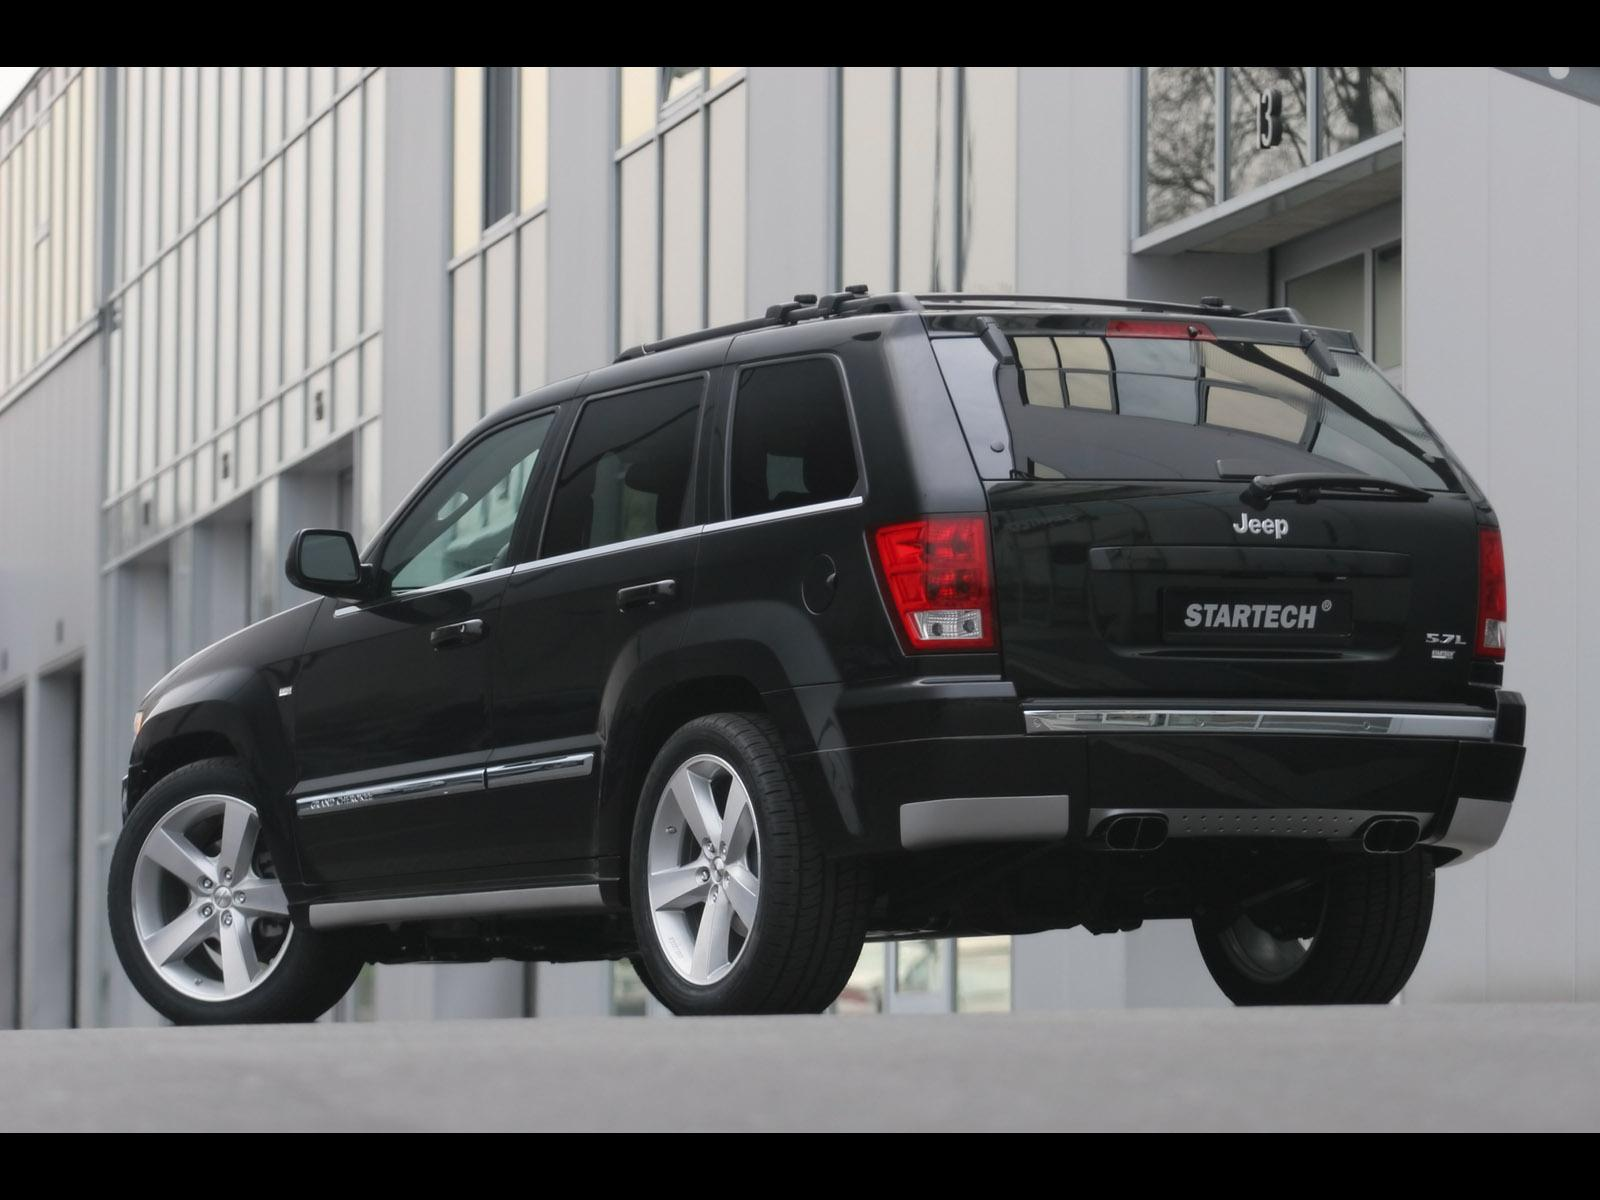 Startech Jeep Grand Cherokee photo 27379